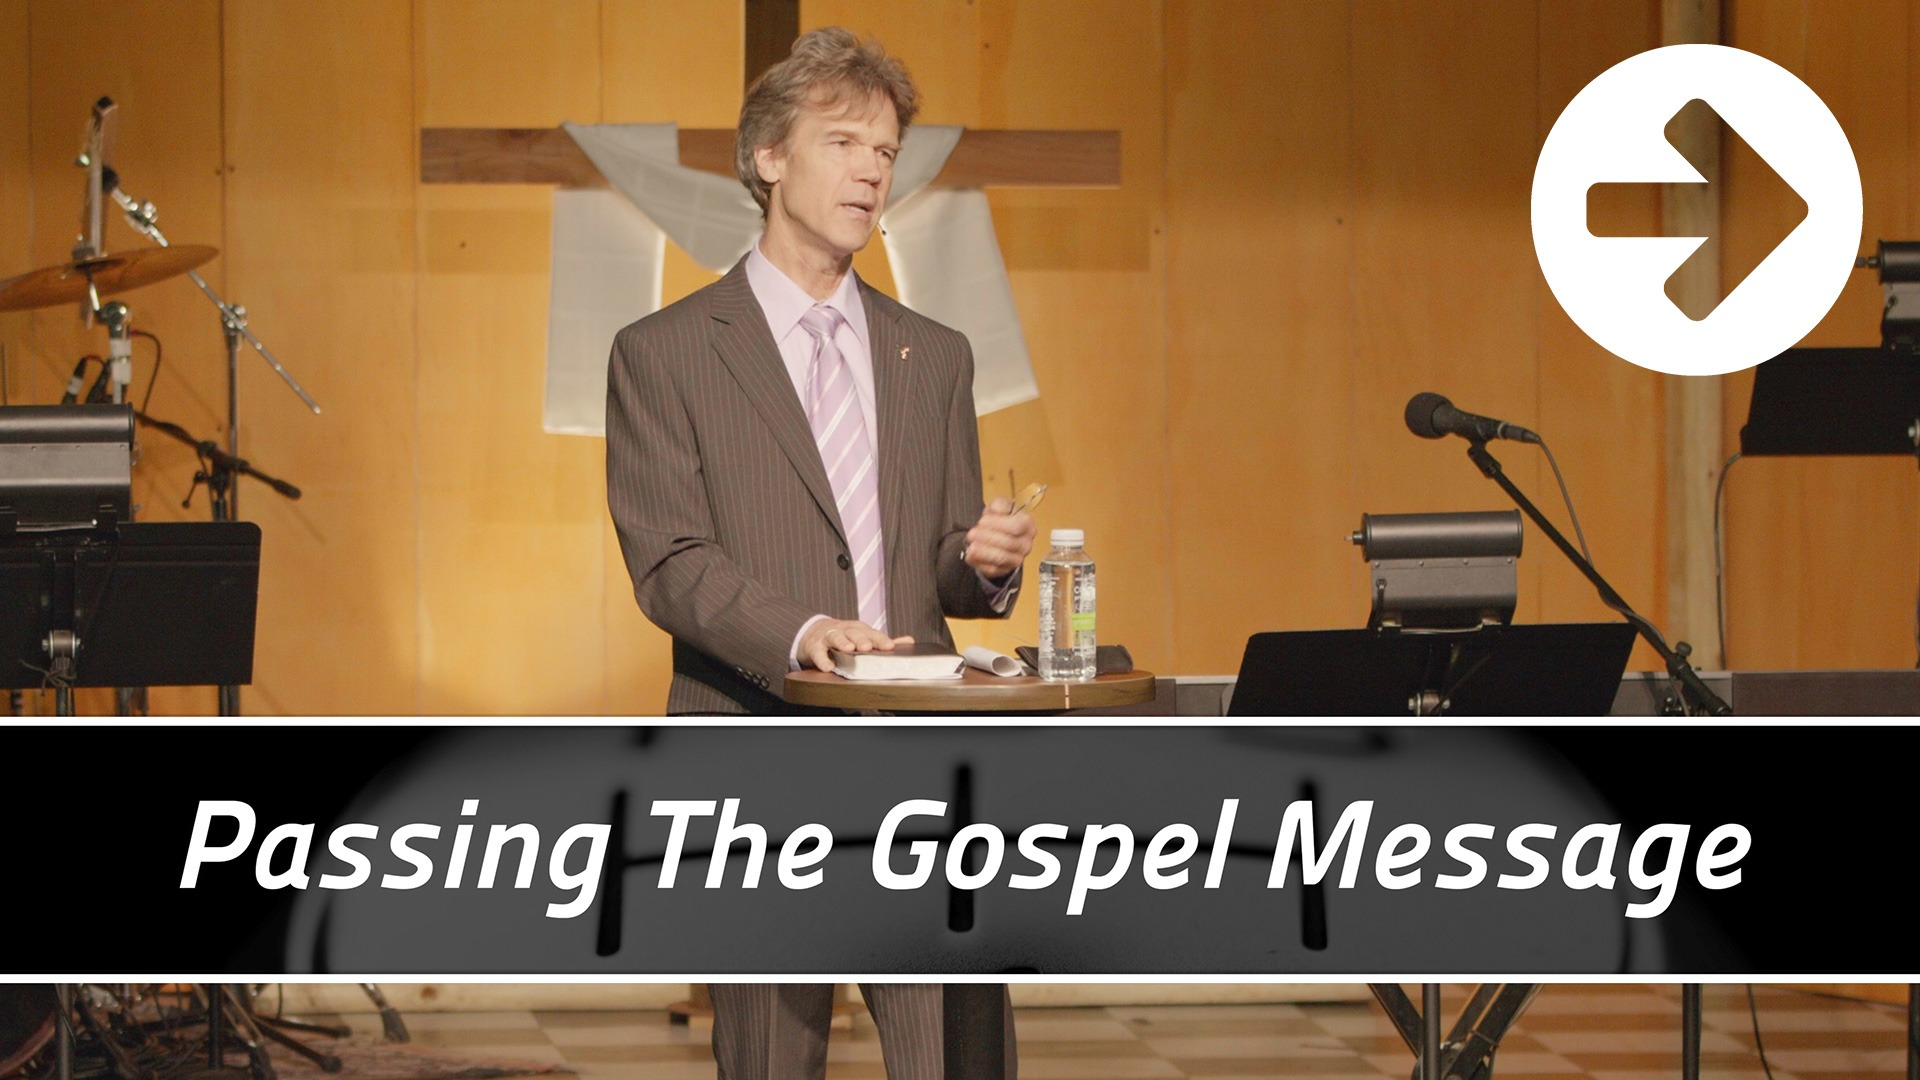 Passing The Gospel Message Image